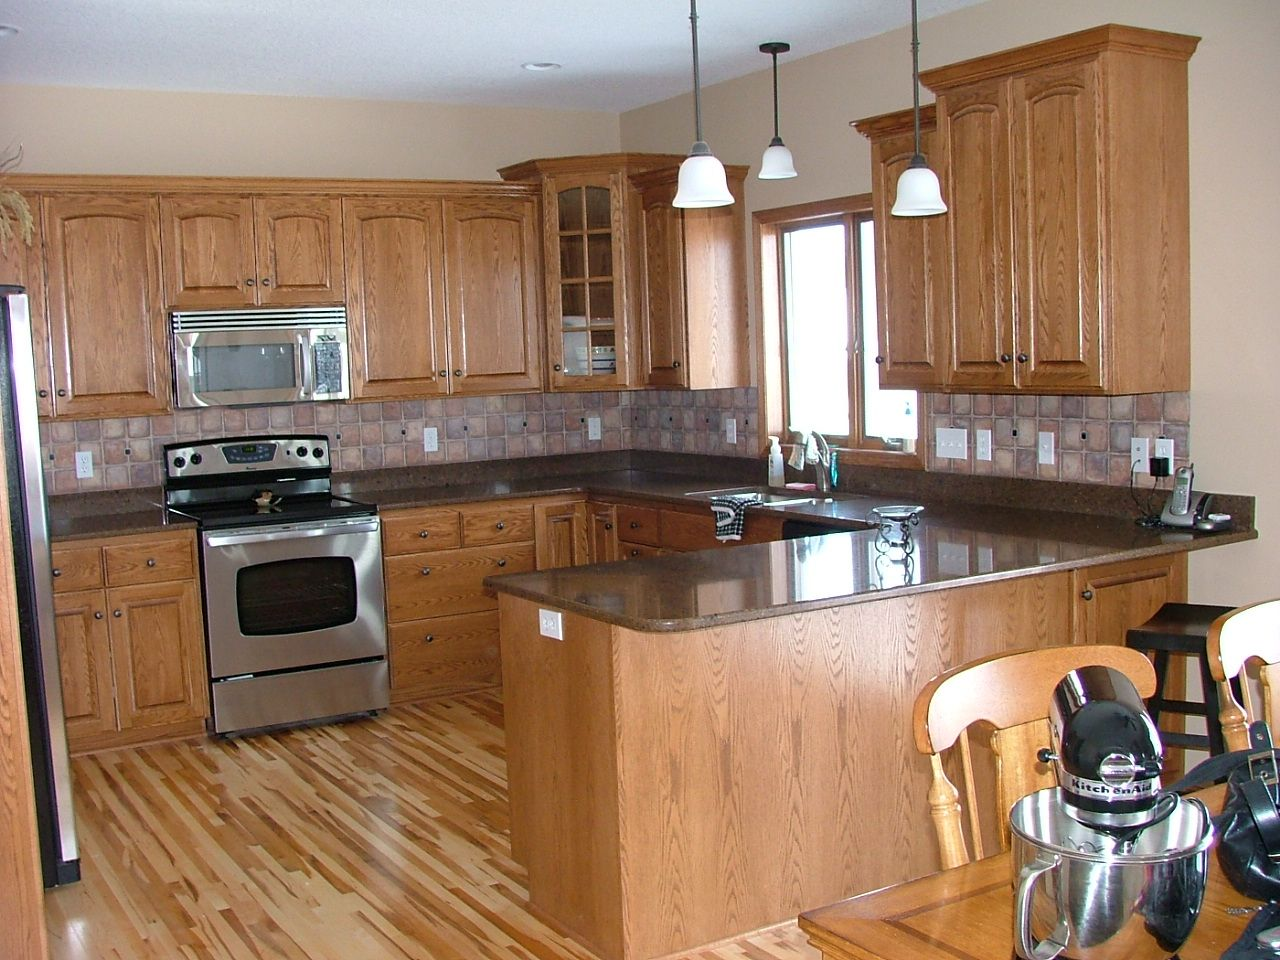 Oak Cabinets In Kitchen Decorating Ideas Black Granite Counter Oak Hickory Oak Wood Kitchen